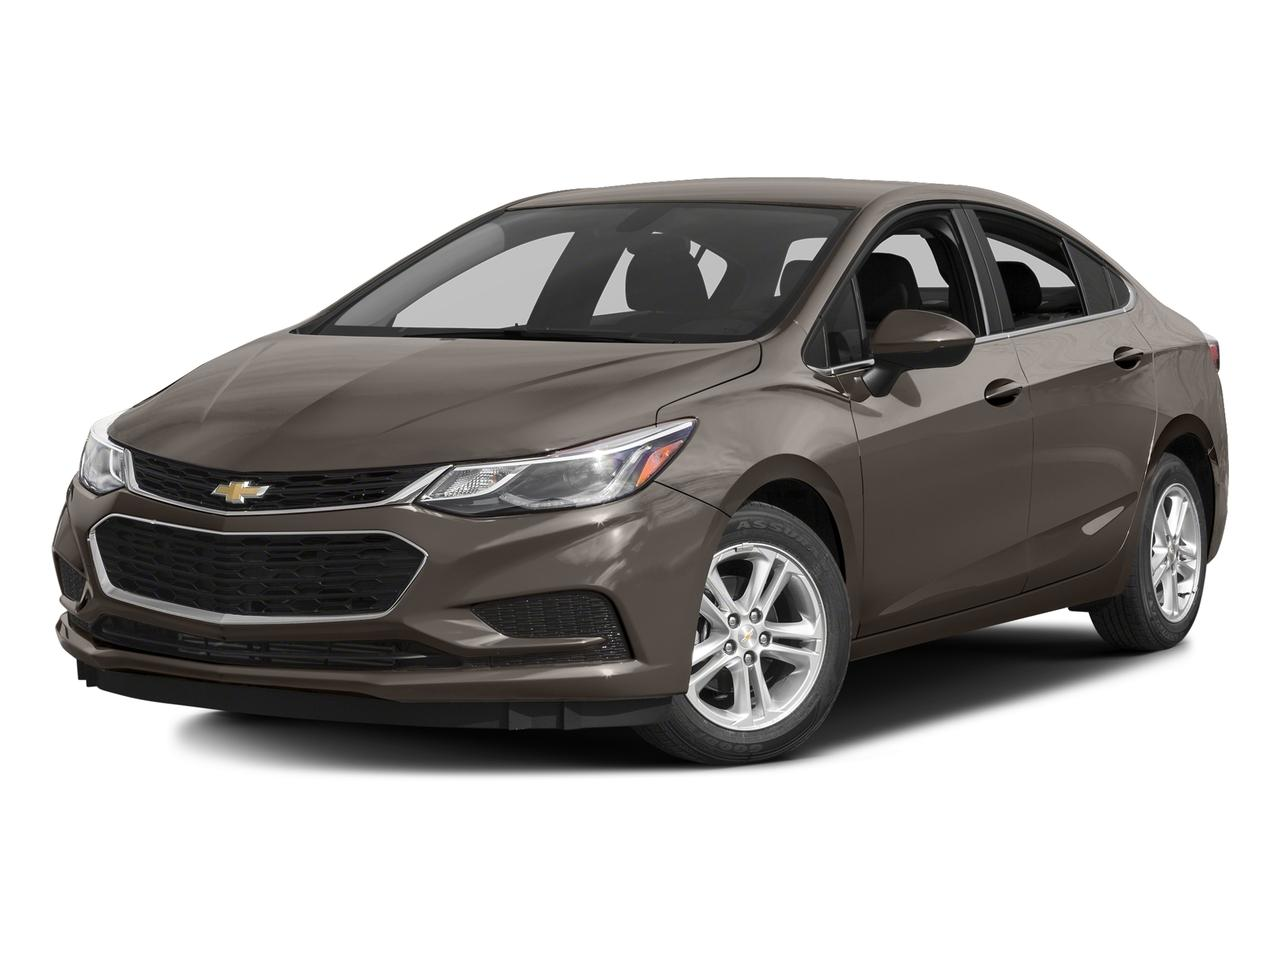 2017 Chevrolet Cruze Vehicle Photo in Clifton, NJ 07013